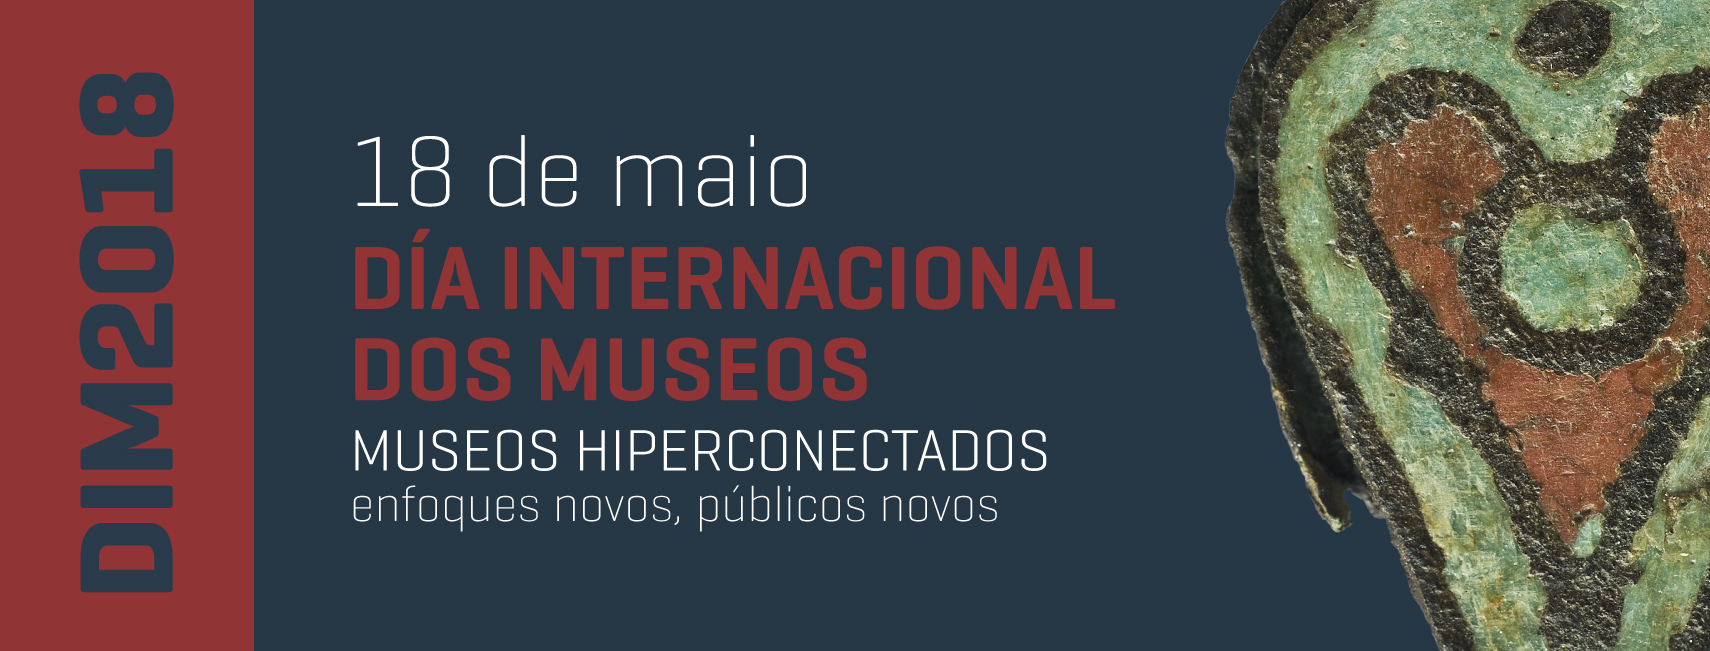 https://www.cultura.gal/es/evento/44533/109/49520